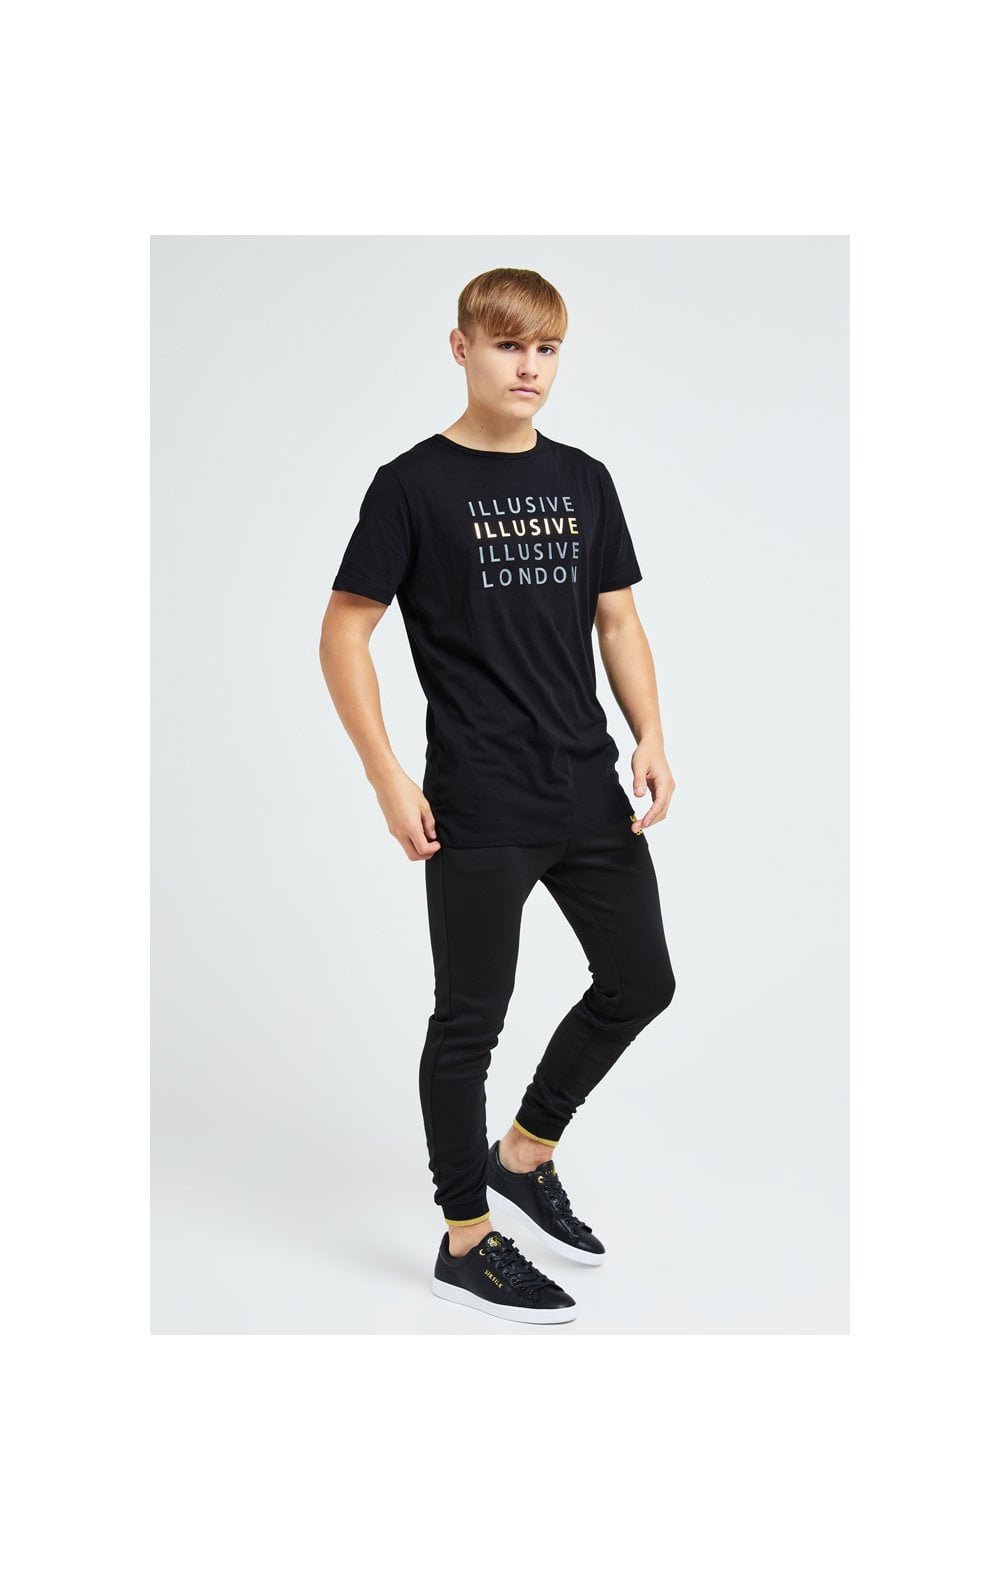 Illusive London Sovereign Tee - Black & Gold (4)